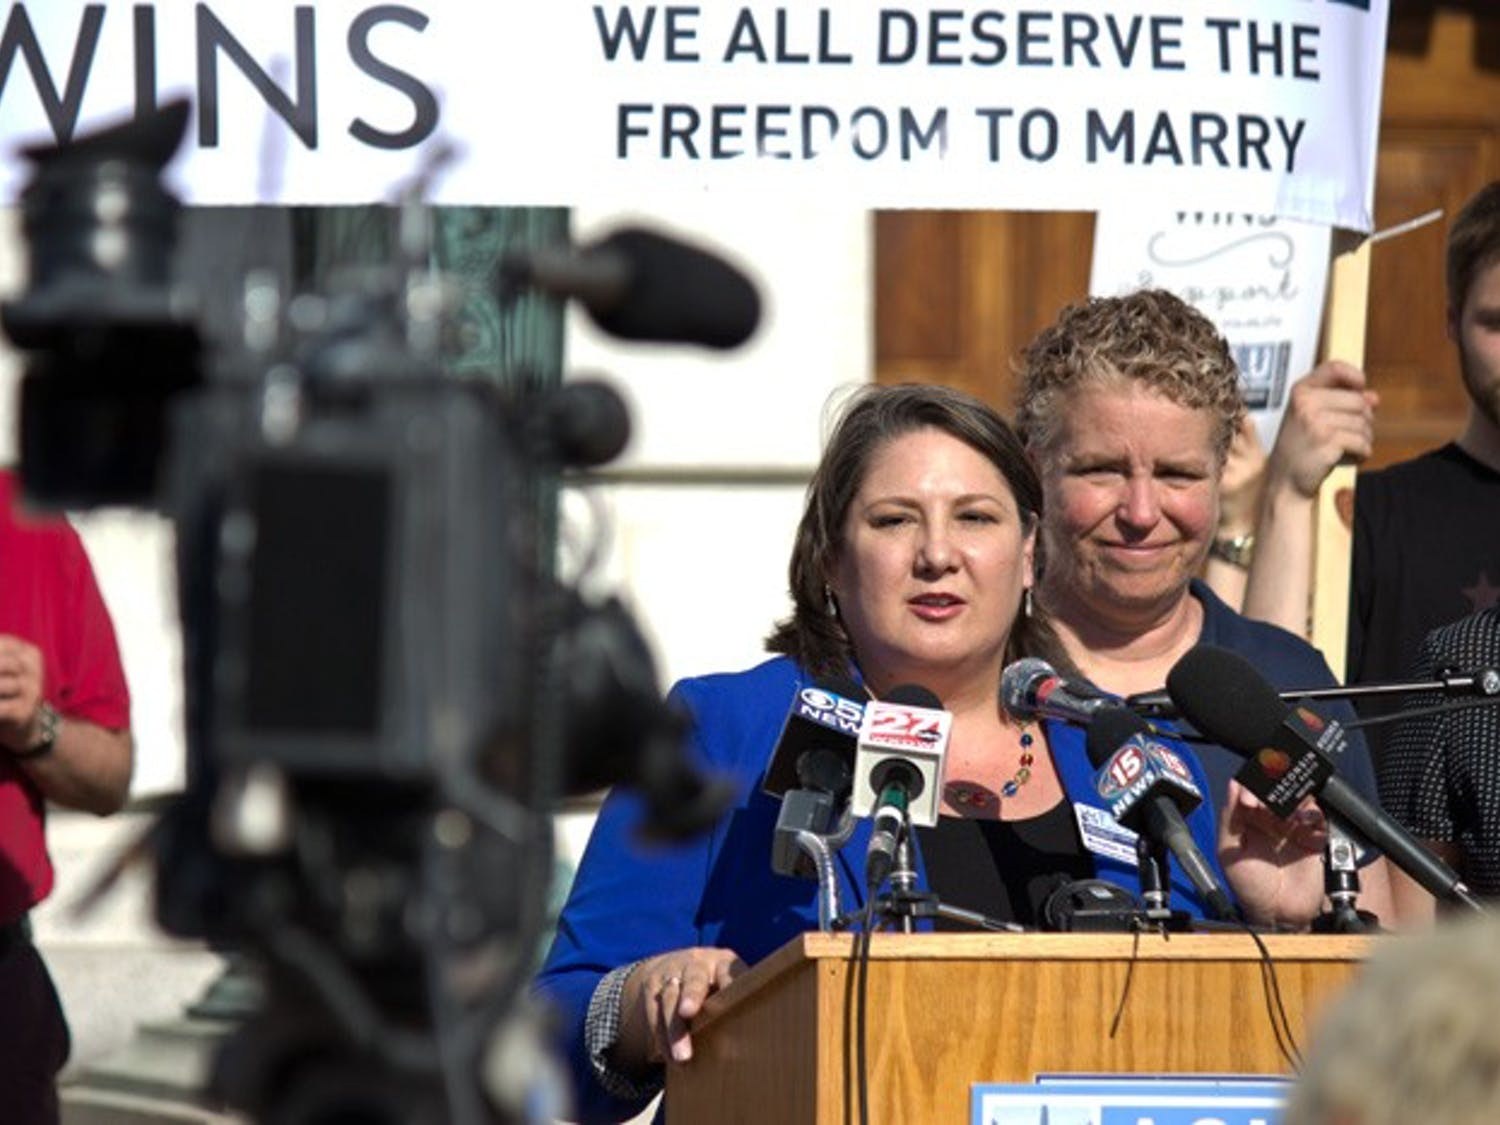 U.S. District Court Judge Barbara Crabb declared Wisconsin's ban on same-sex marriage to be unconstitutional Friday June 6, 2014 in her decision on a lawsuit against the ban filed by the American Civil Liberties Union. Couples flock to Madison City Hall to get married following the ruling.